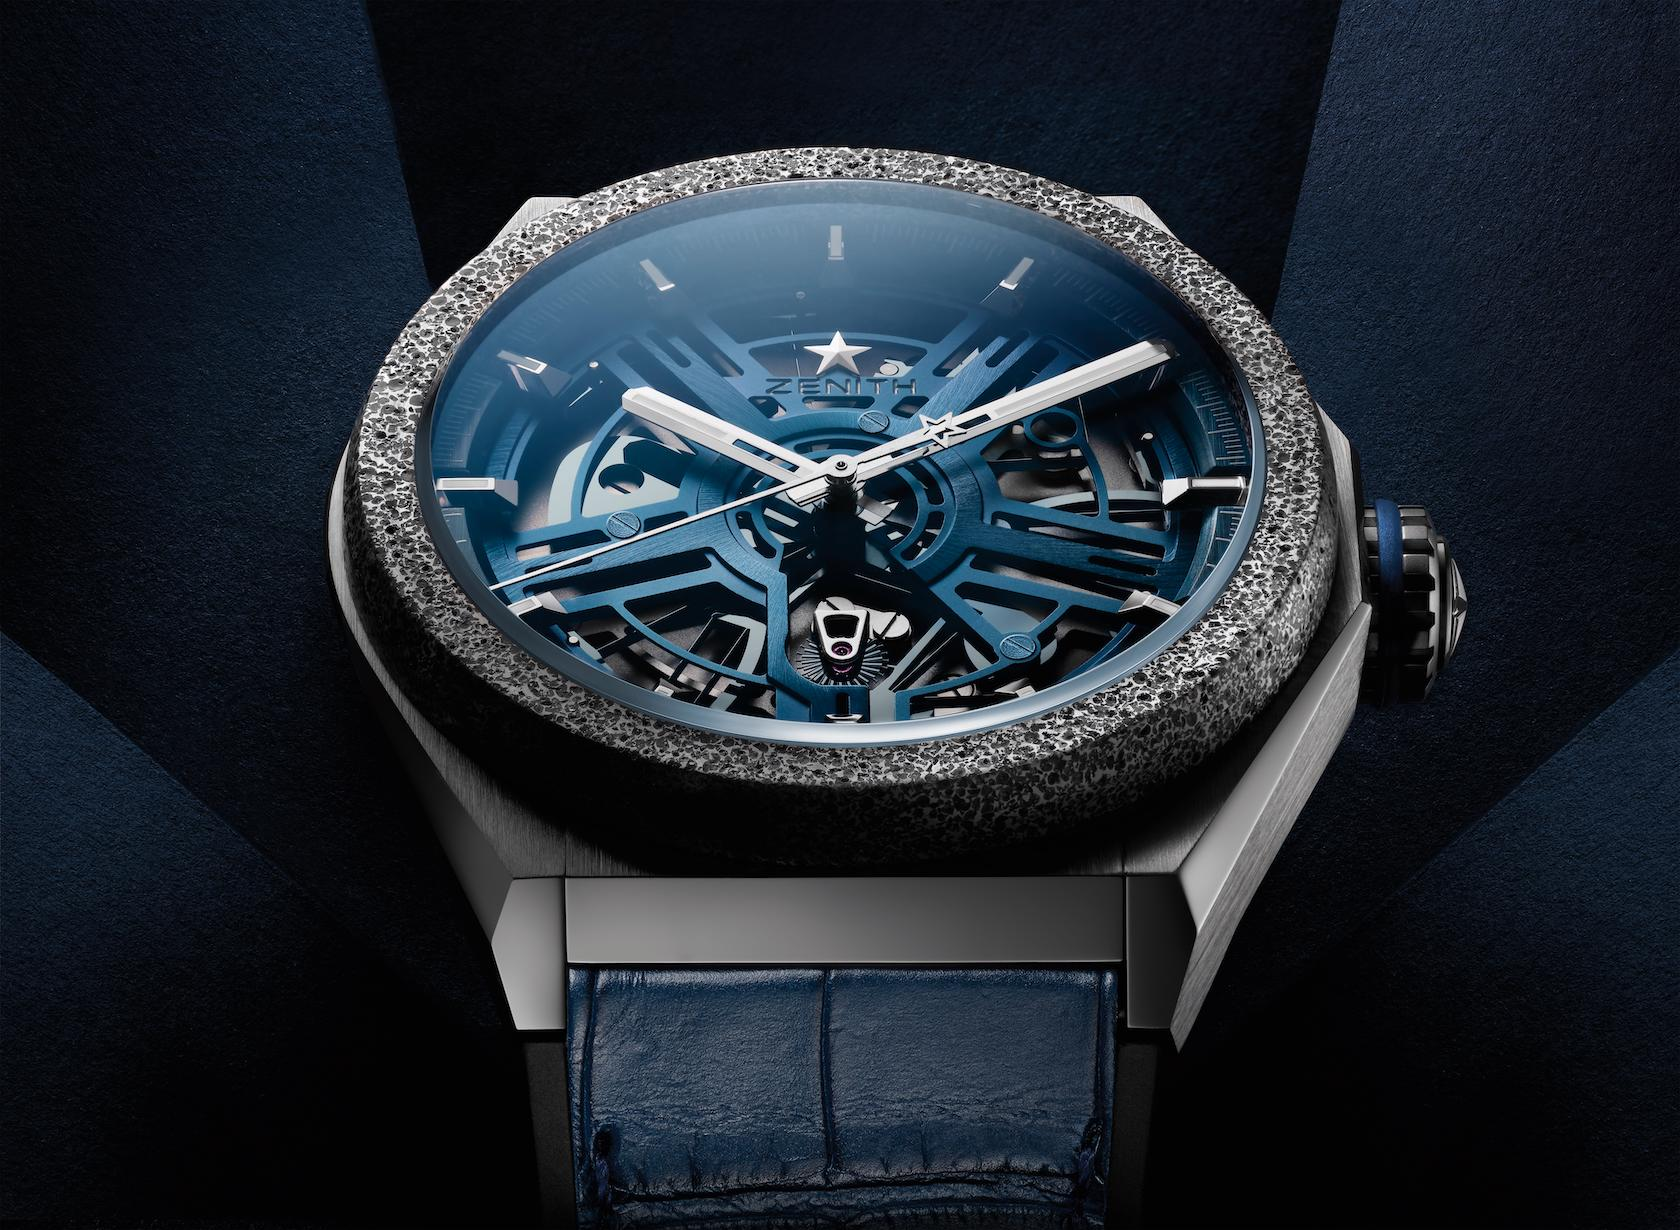 Zenith Defy Inventor as seen at Baselworld 2019